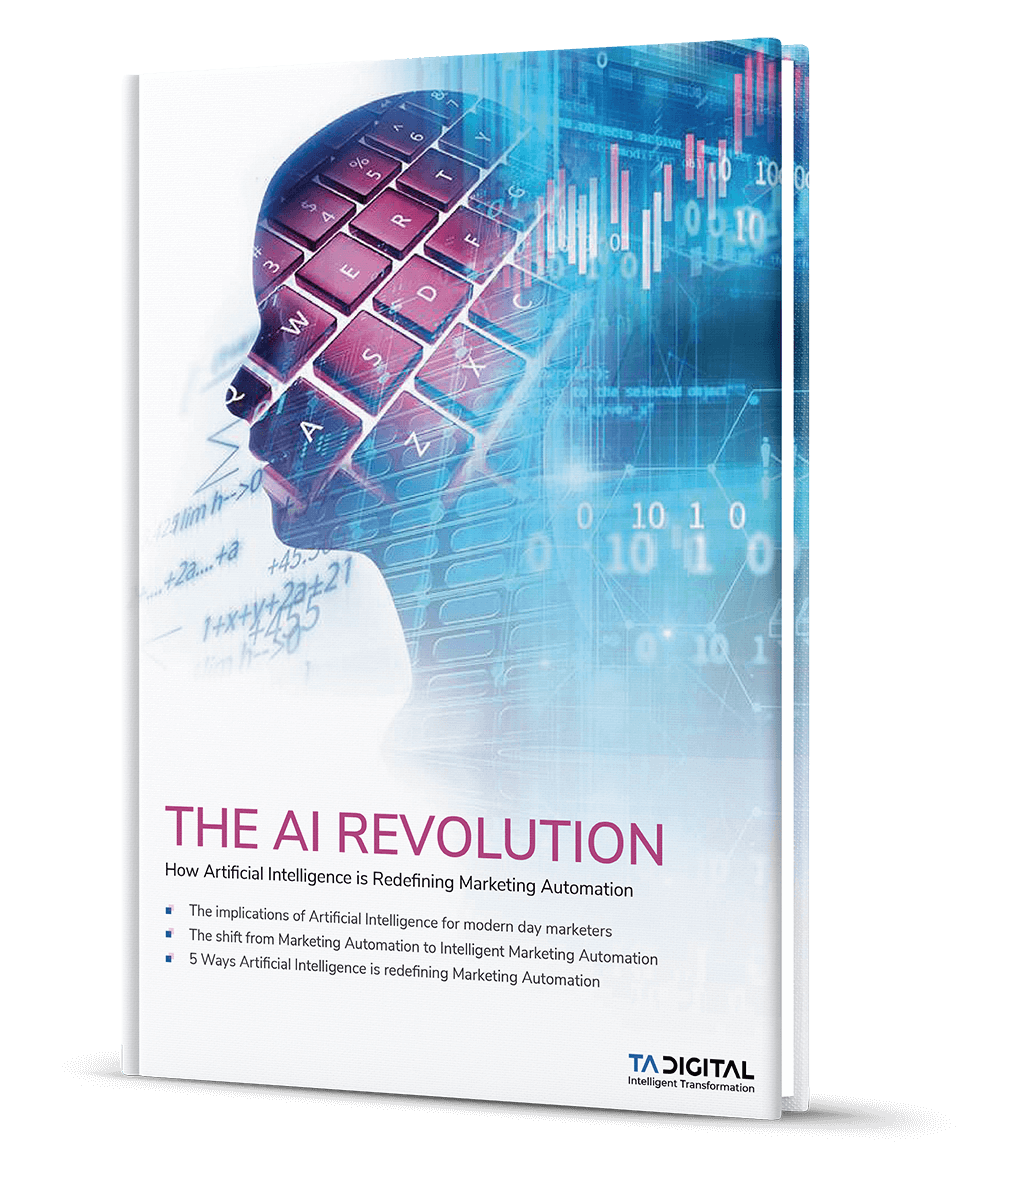 THE AI REVOLUTION - How Artificial Intelligence is Redefining Marketing Automation